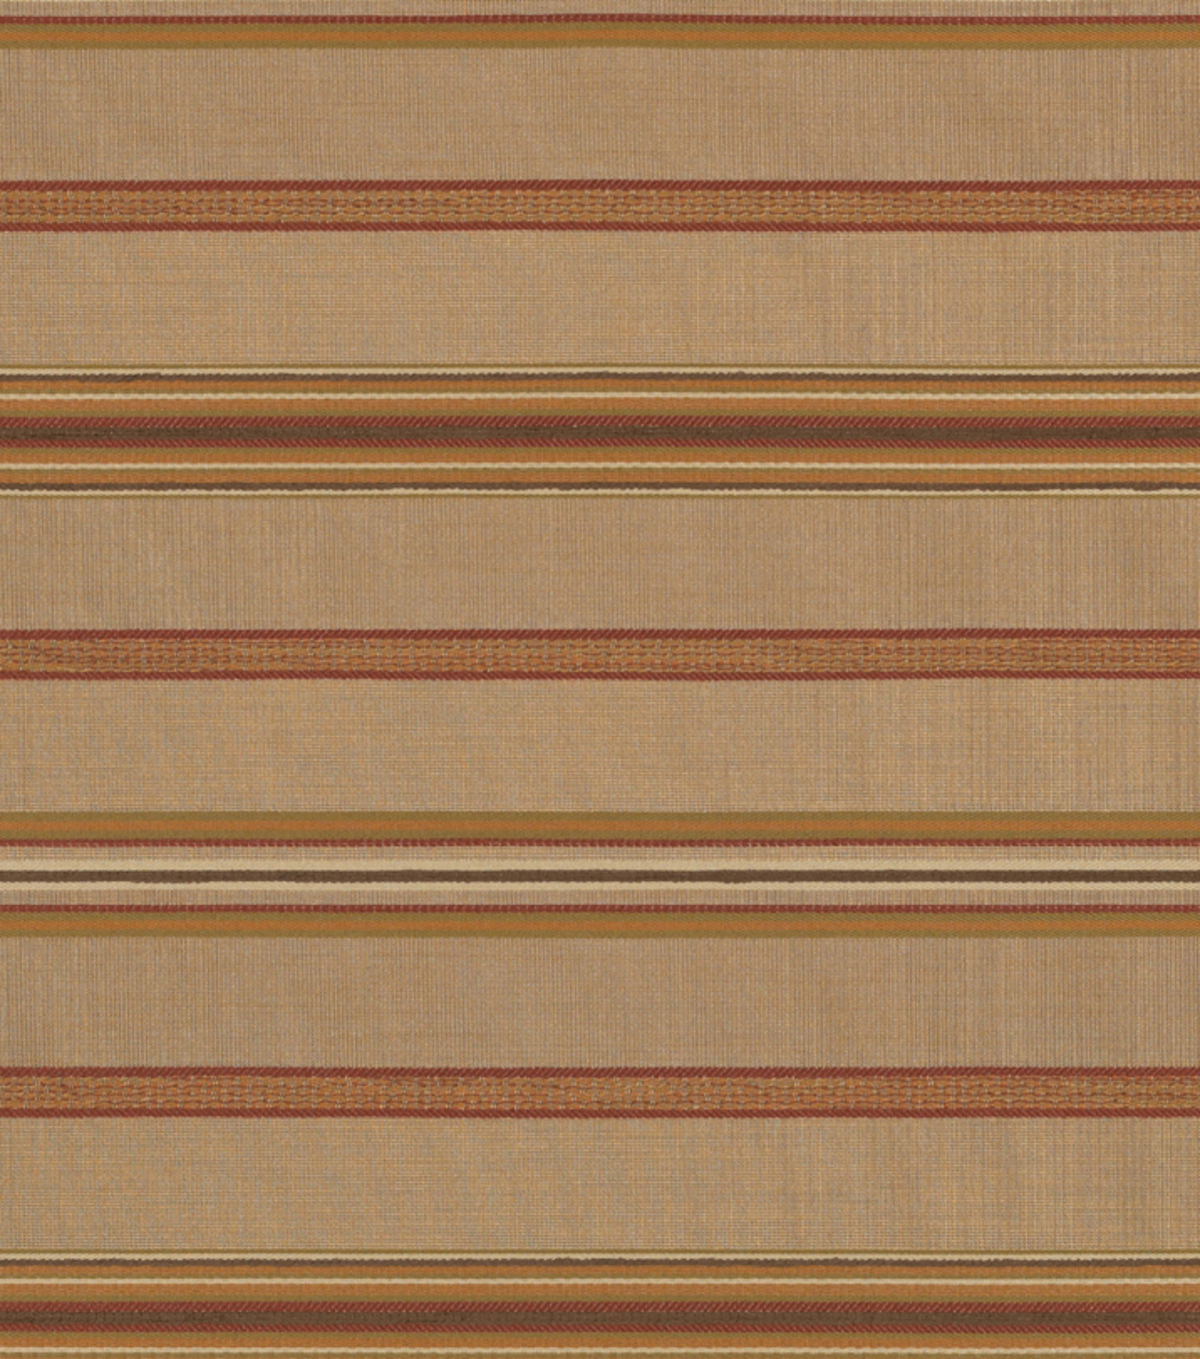 Home Decor 8\u0022x8\u0022 Fabric Swatch-Pamlico Latte